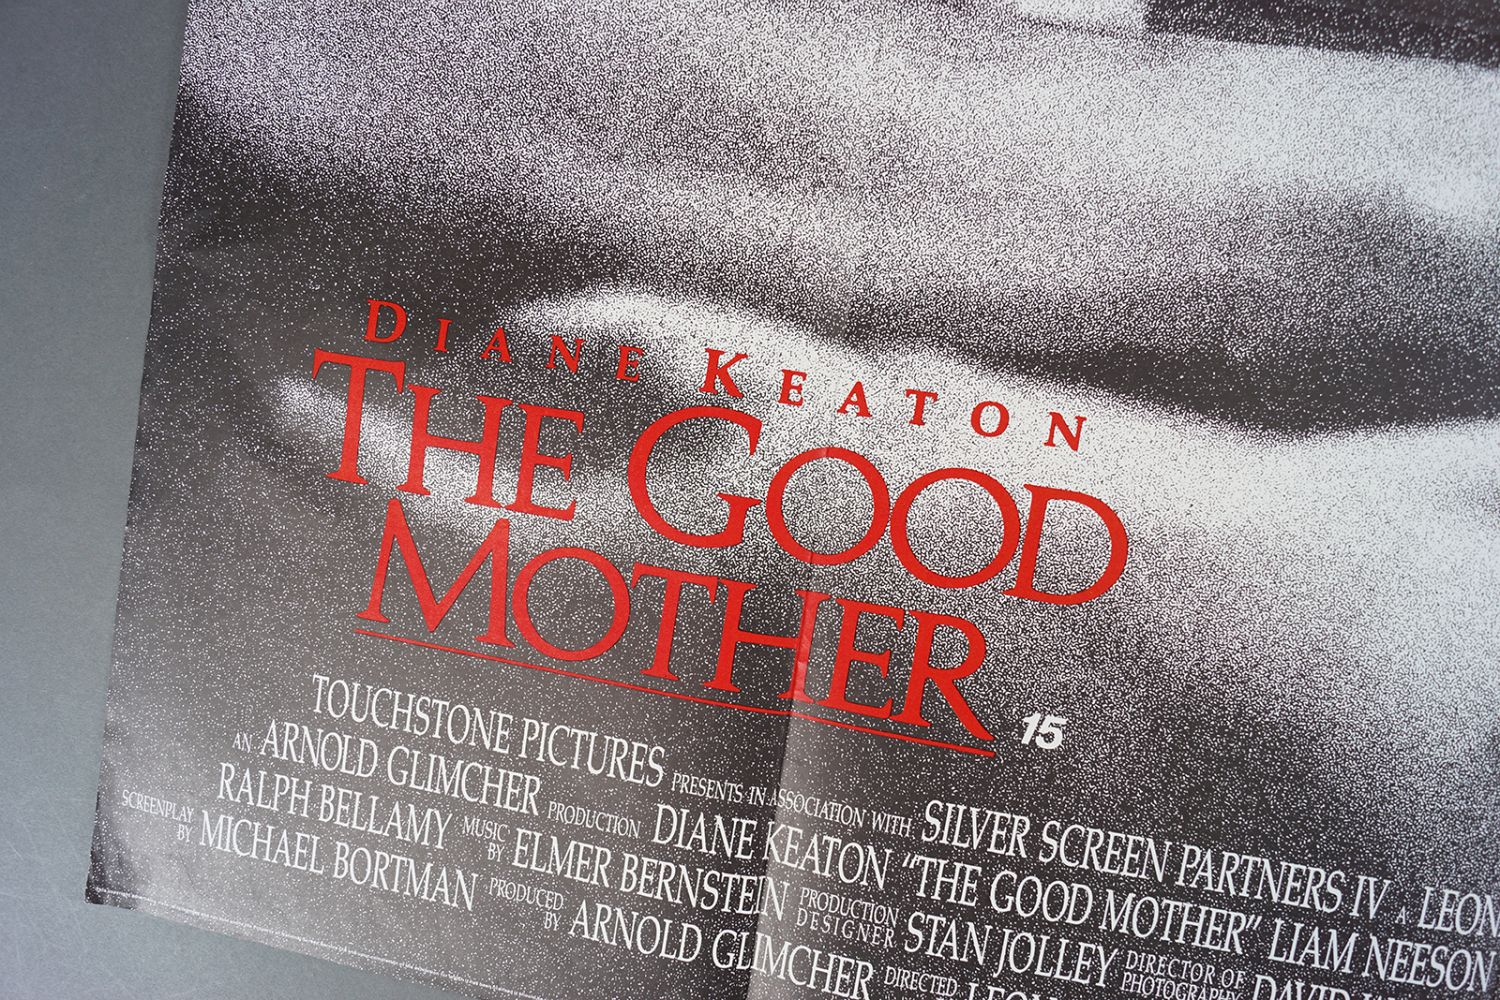 THE GOOD MOTHER - Image 2 of 2